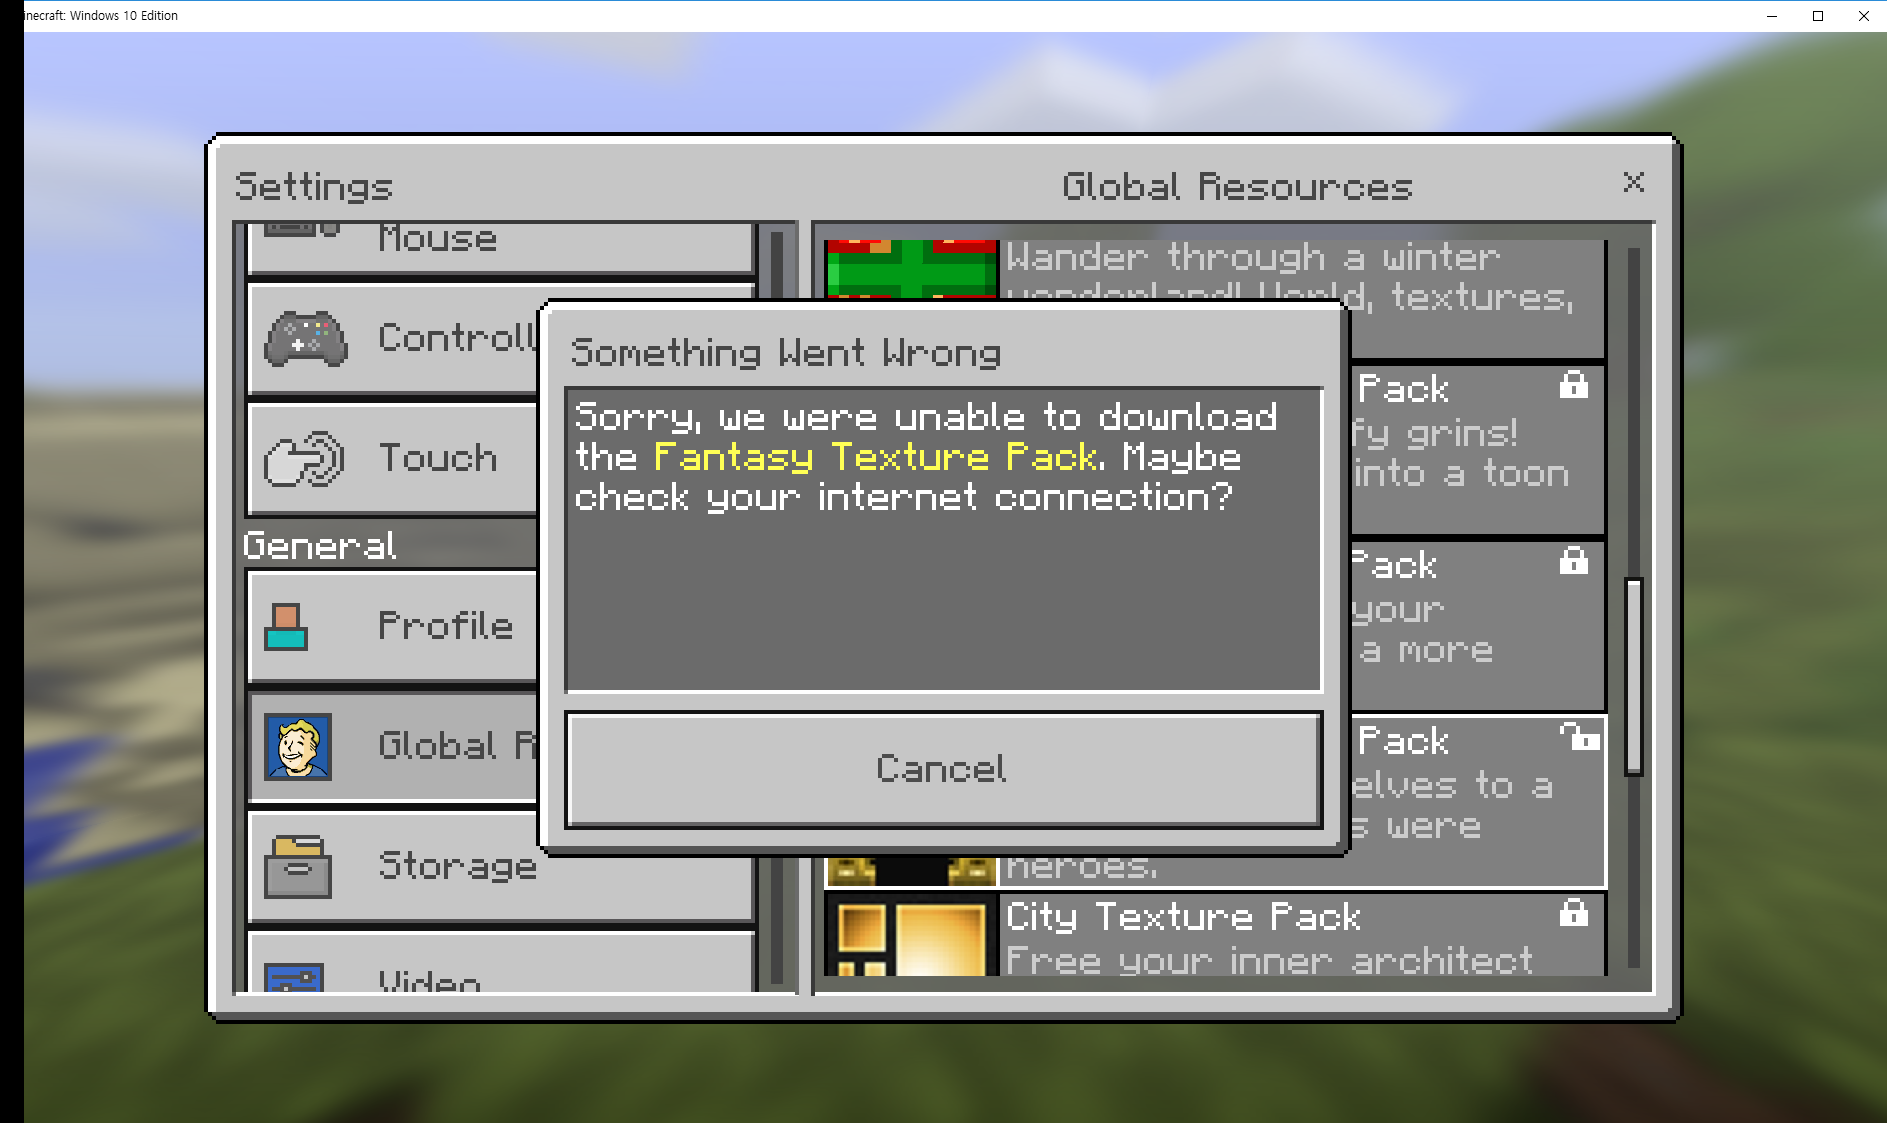 MCPE-22022] Windows 10 Edition All resources download failed